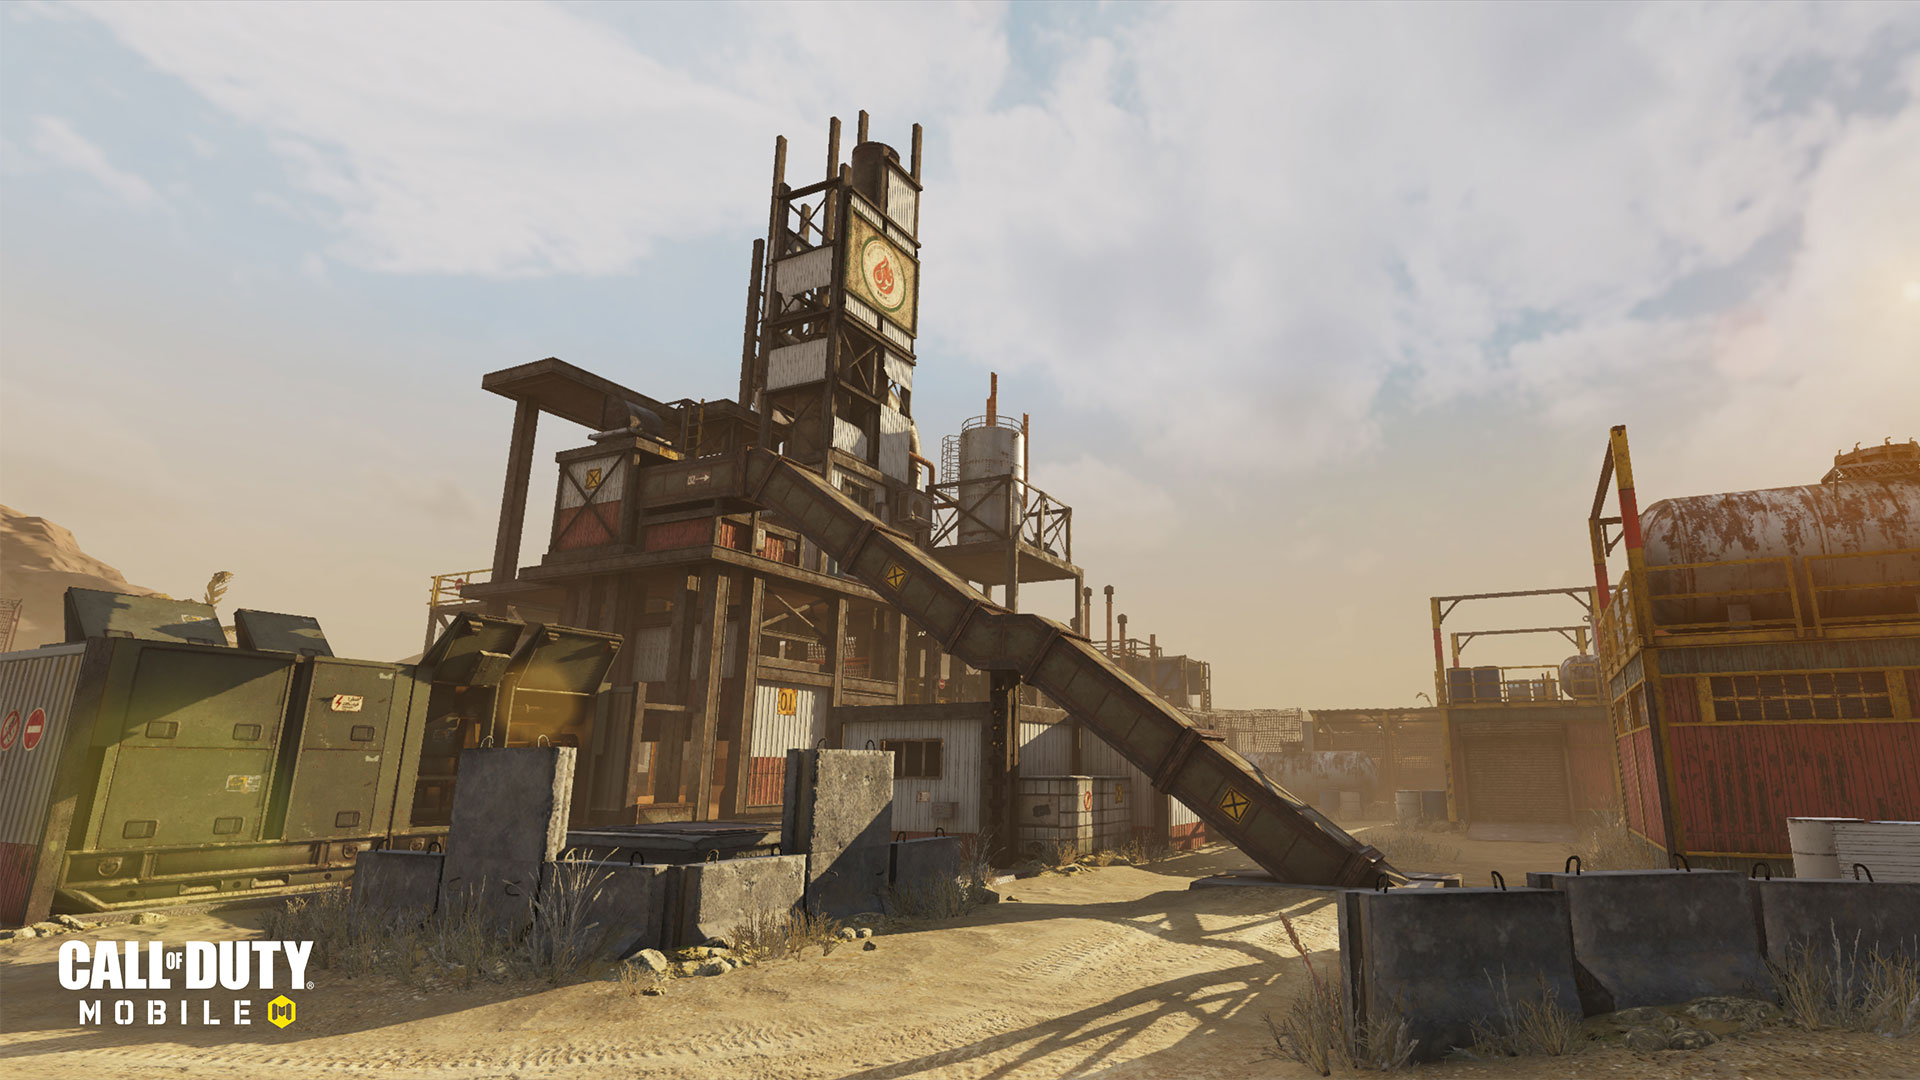 This Week in Call of Duty® - April 27 - Image 6